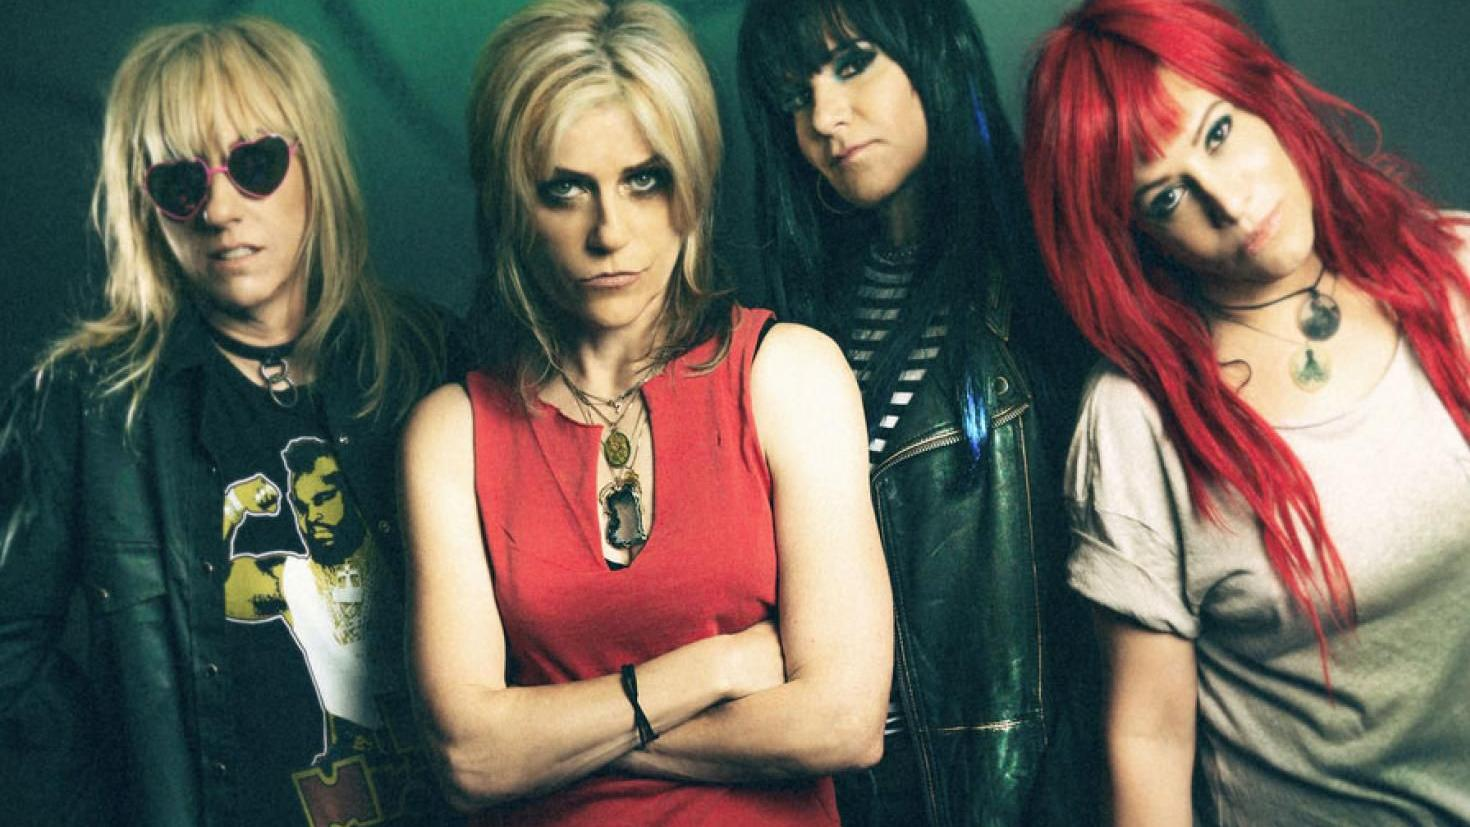 'American Movie' filmmaker Sarah Price documents L7's return from the dead